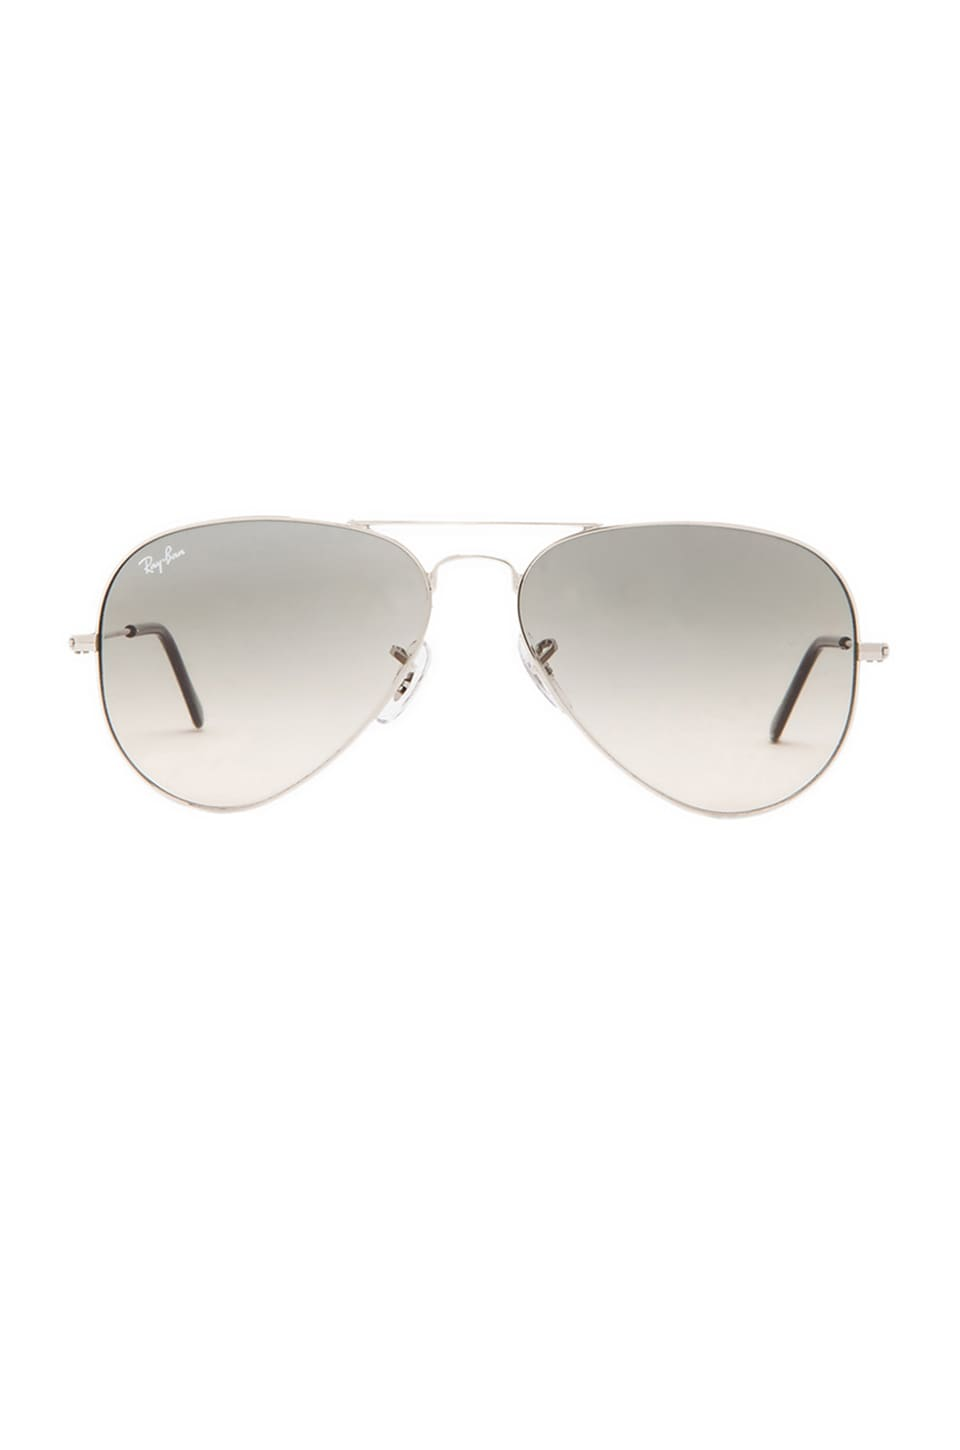 Ray-Ban Aviator Gradient in Light Grey Gradient